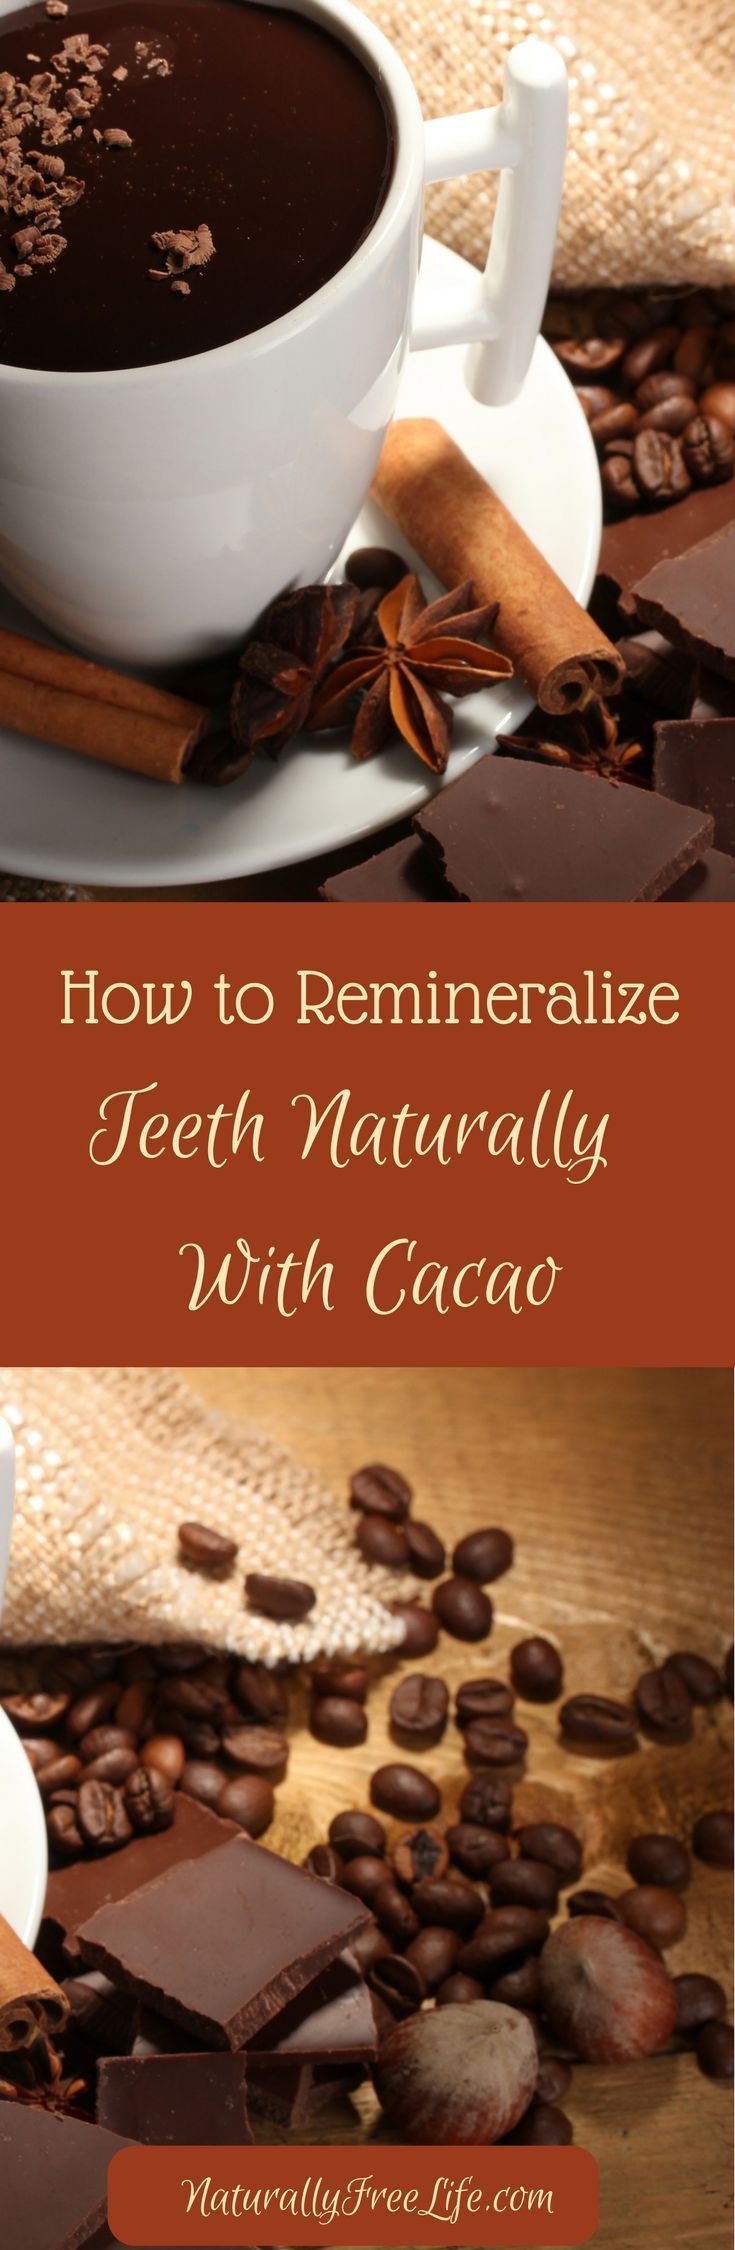 How to remineralize teeth naturally with chocolate